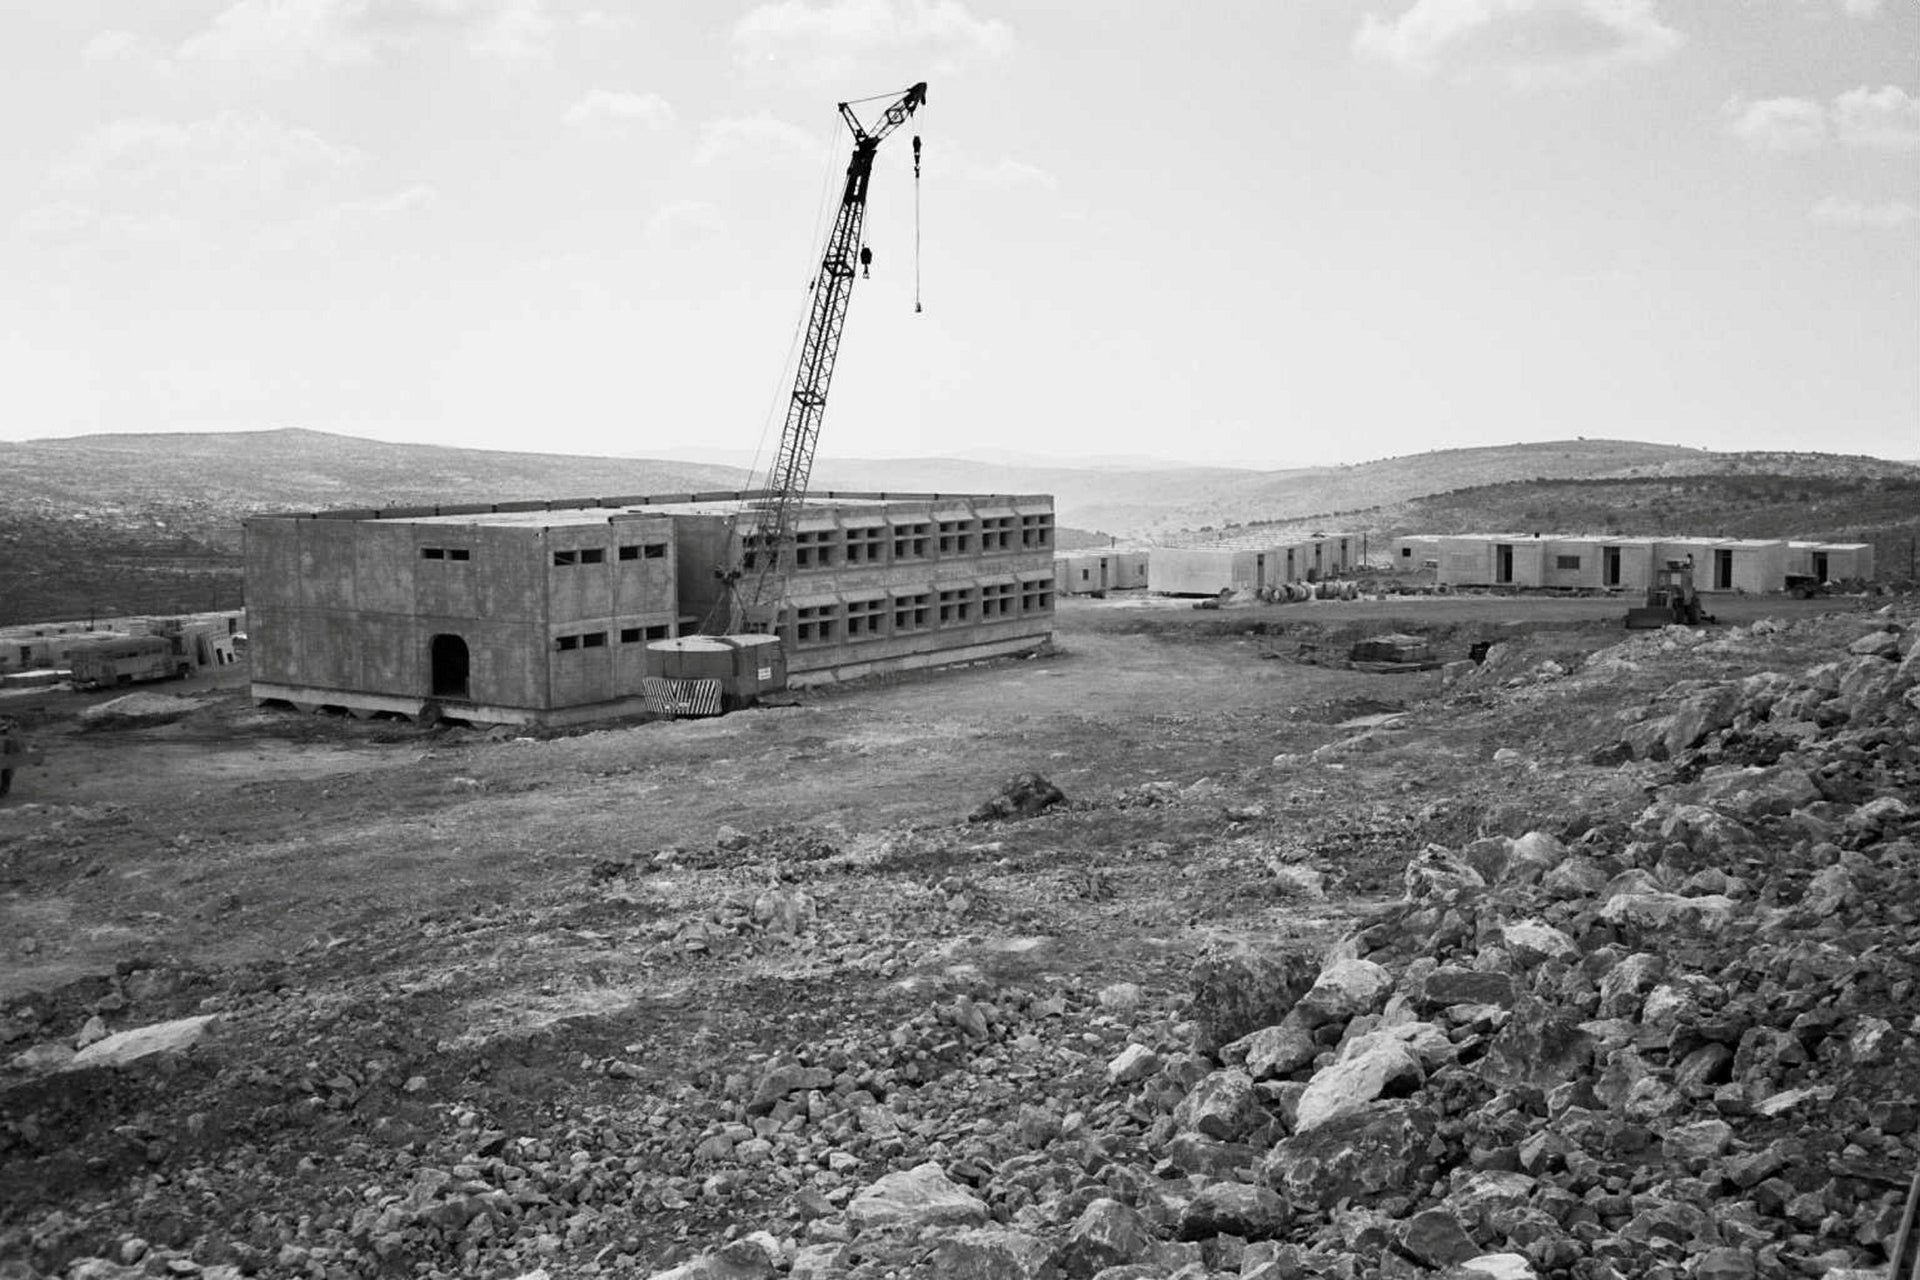 Construction in the early days of Ariel.